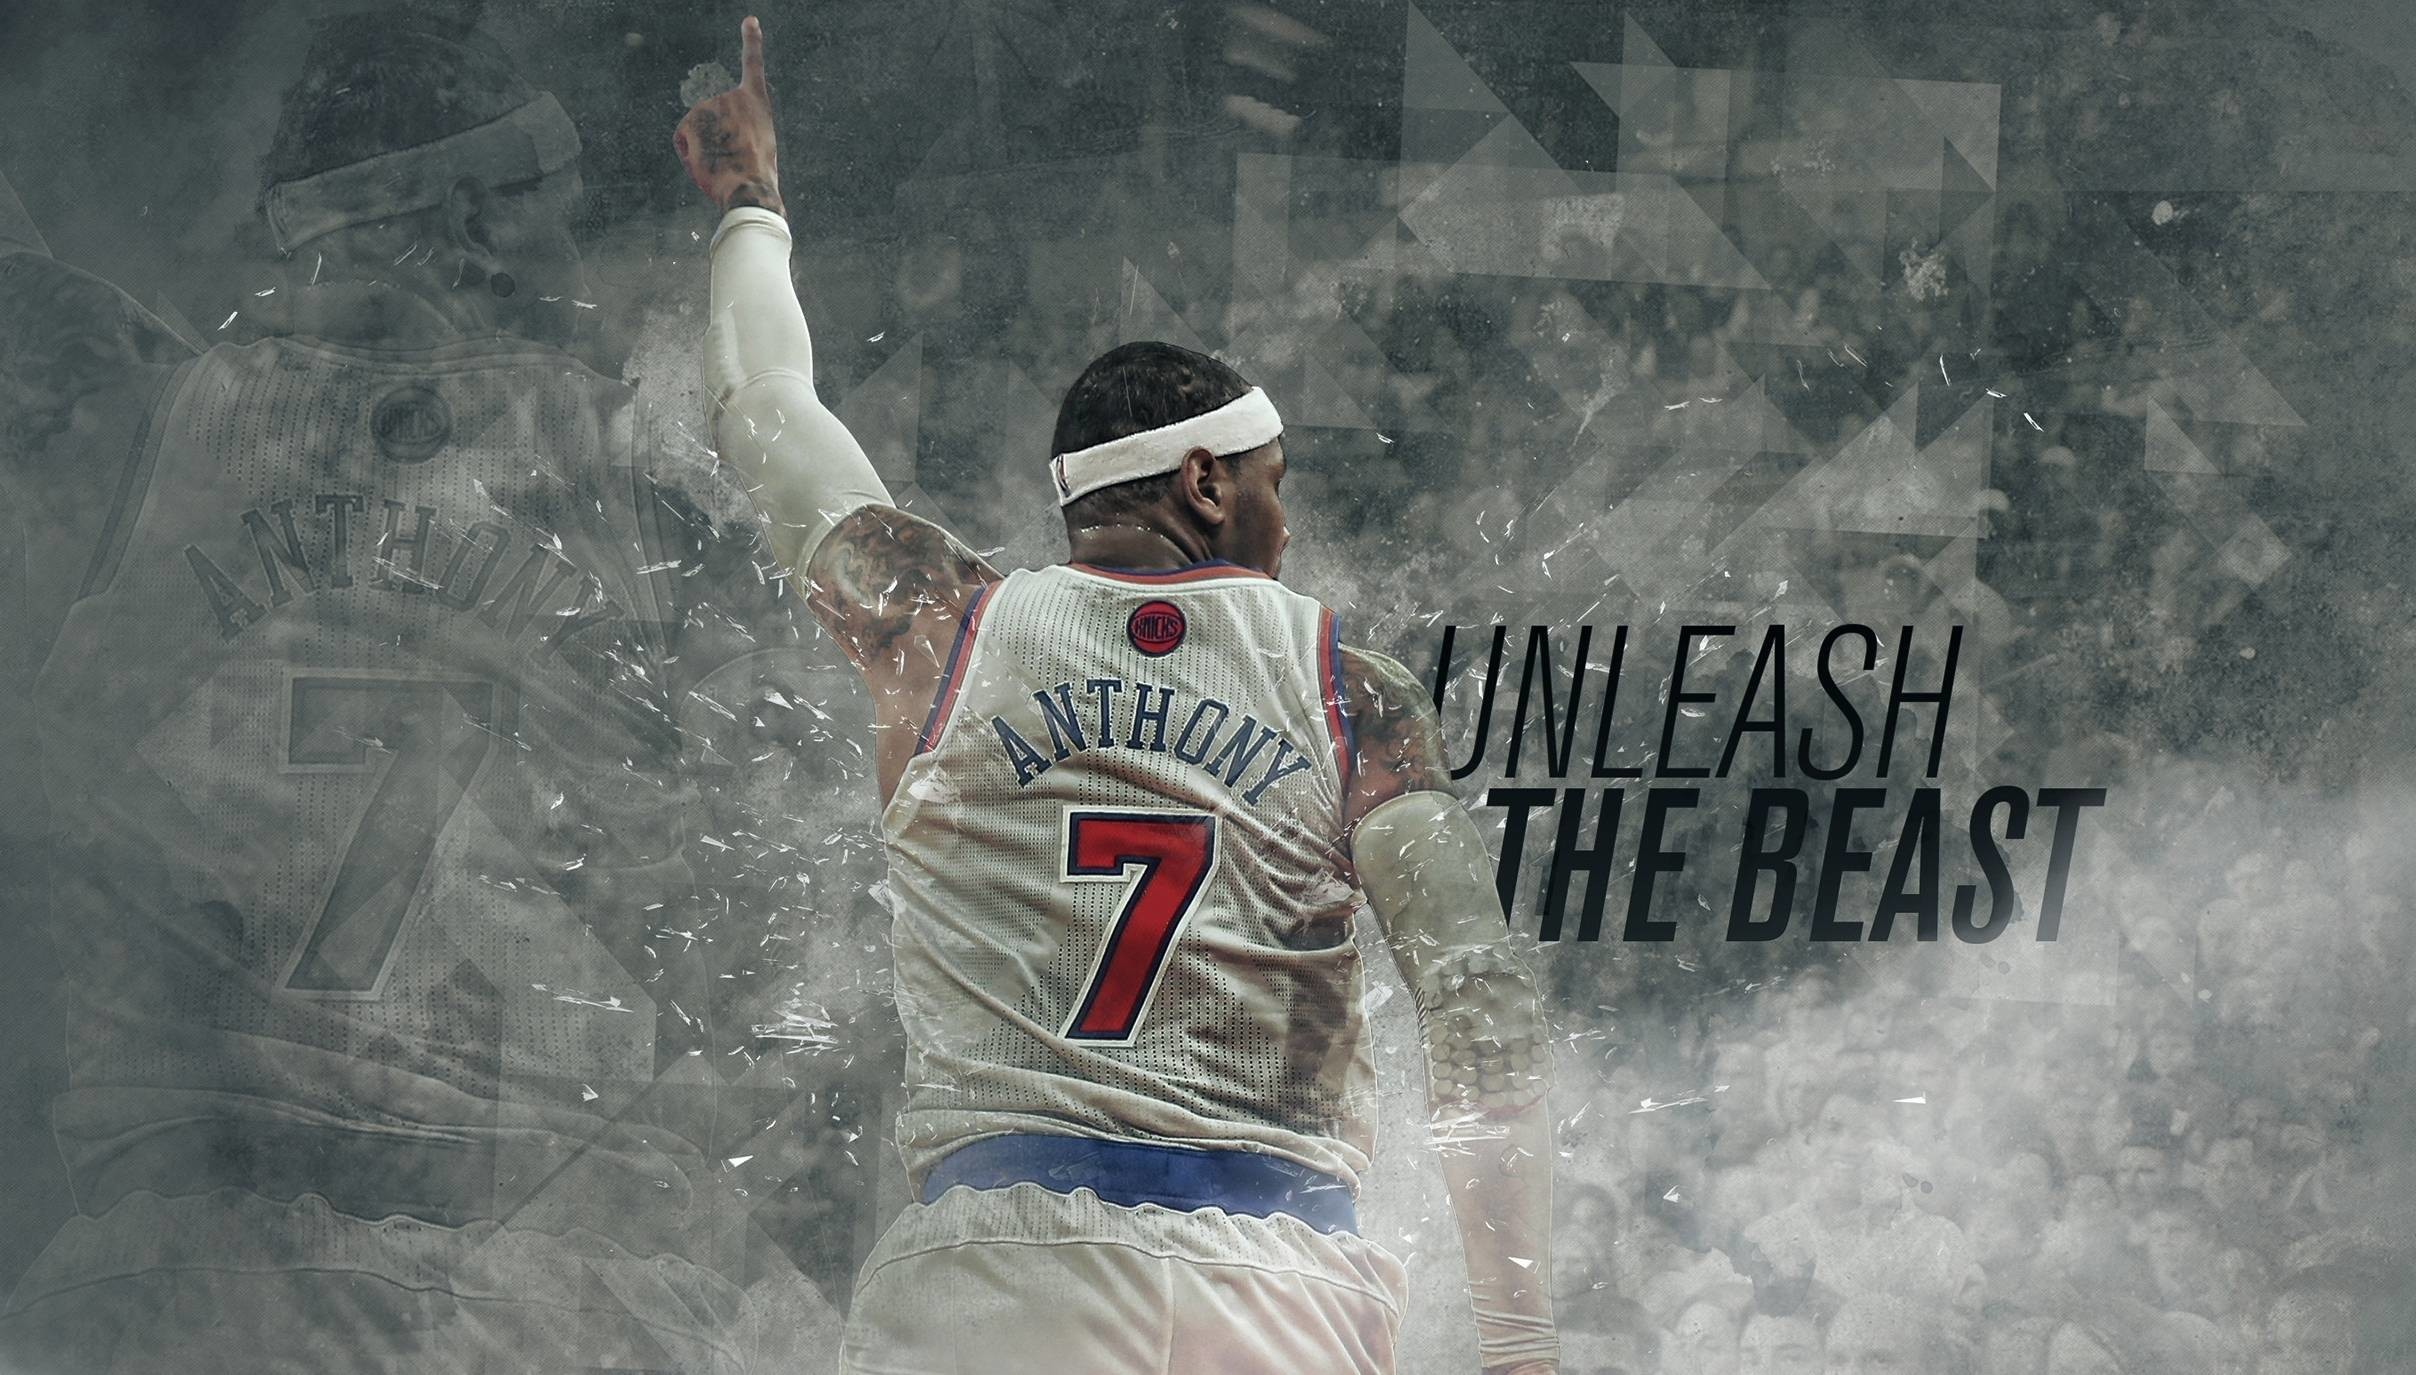 2416x1375 Wallpaper carmelo, anthony, nba wallpapers sports - download